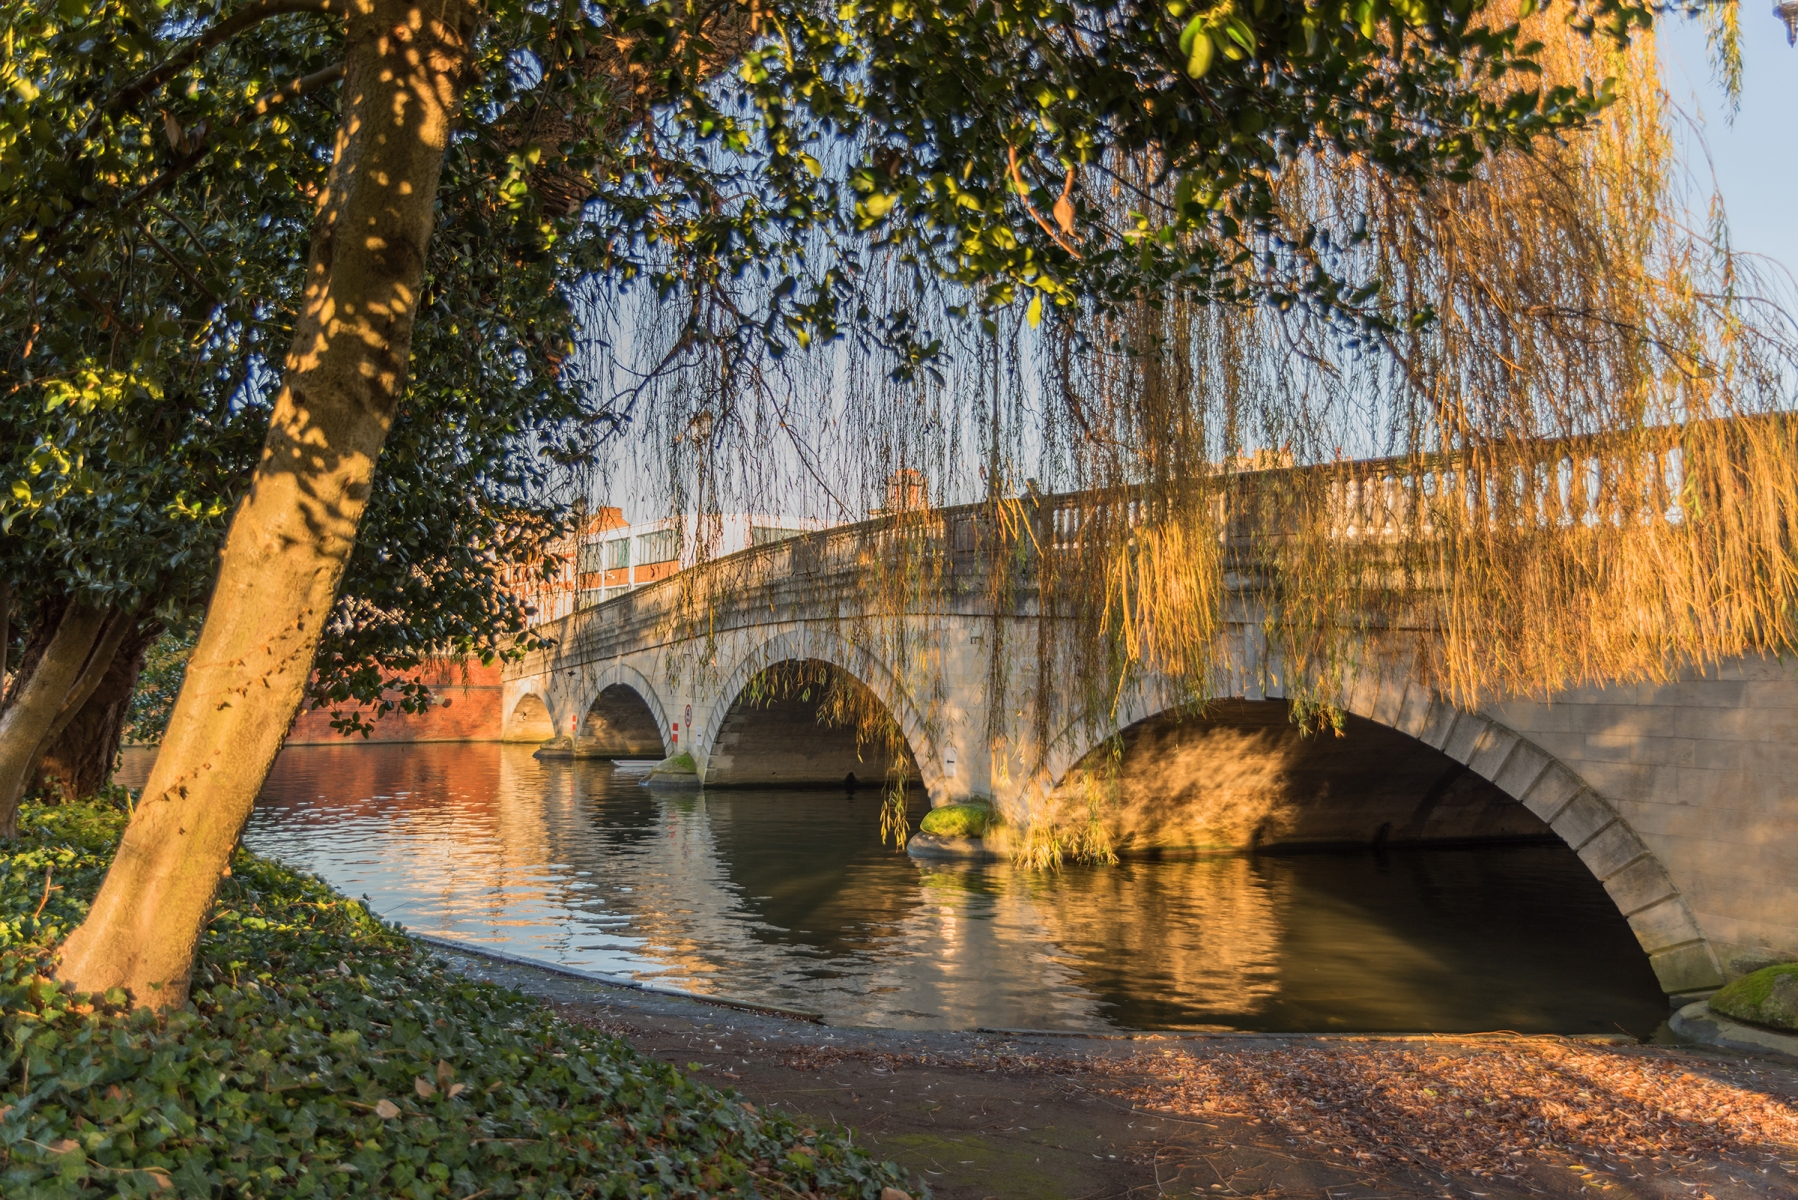 Bedford Bridge, Bedfordshire, viewed from The Embankment